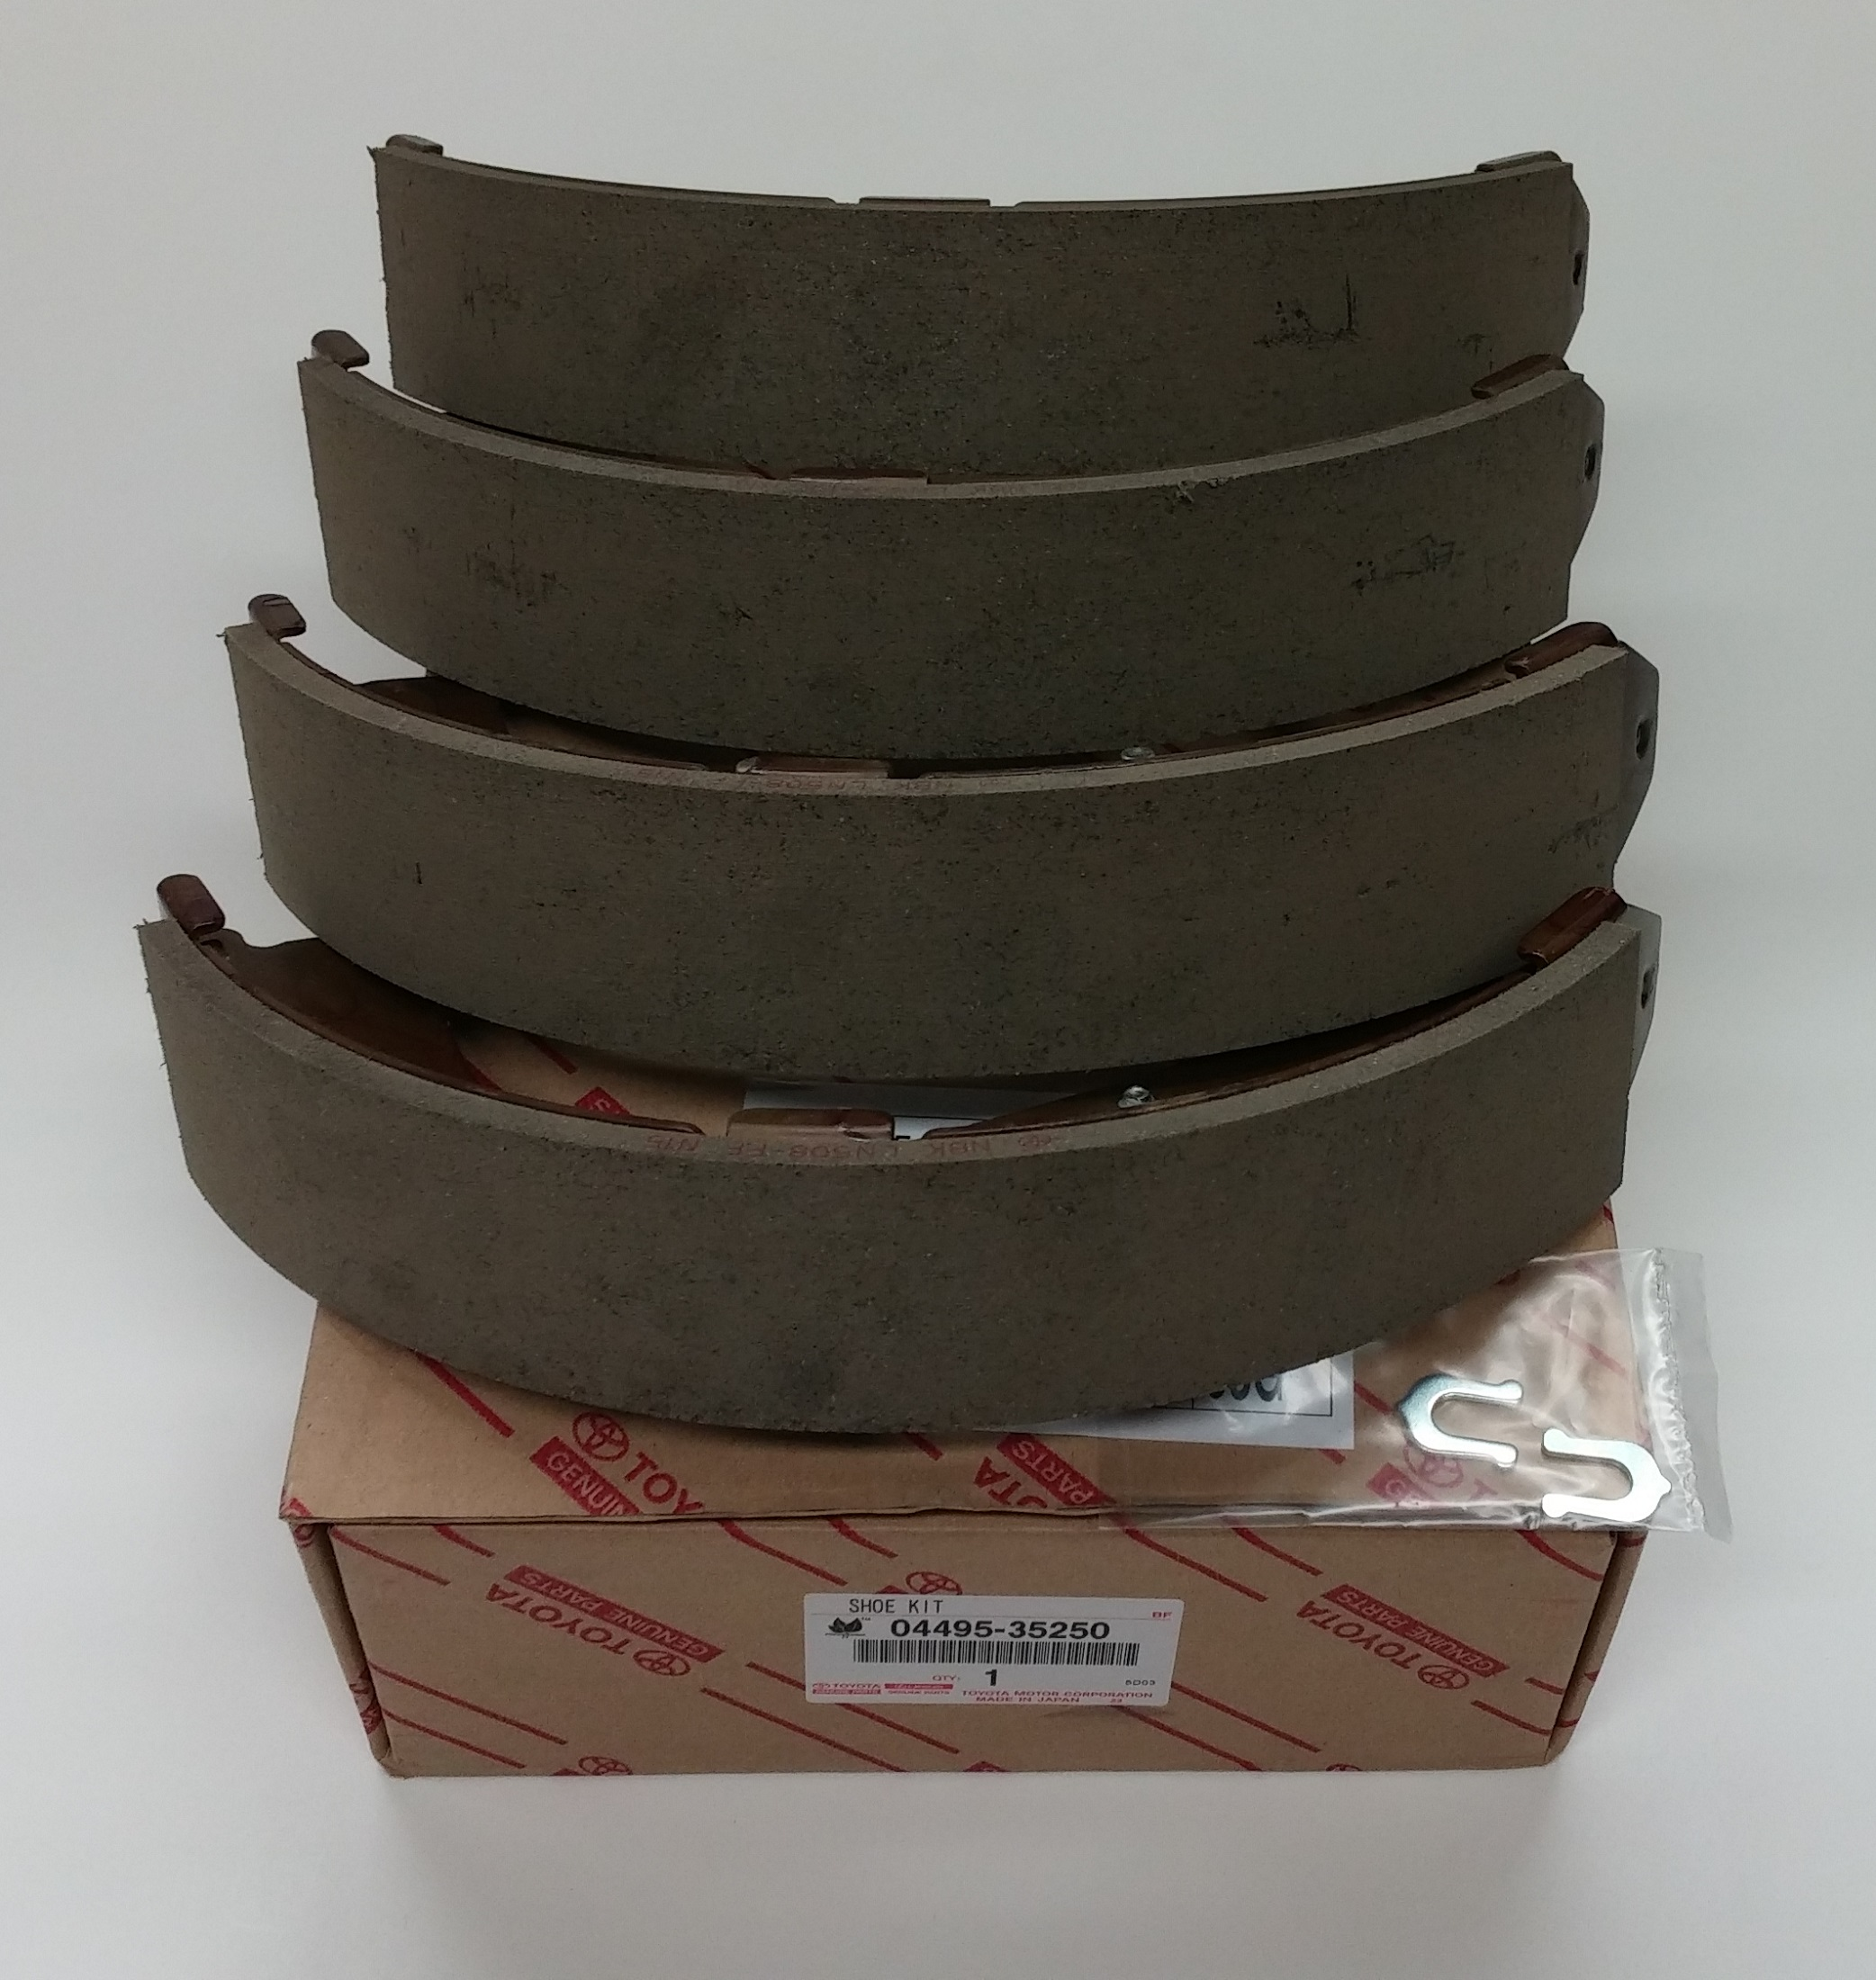 Tundra Tacoma 4runner Rear Brake Shoes 04495